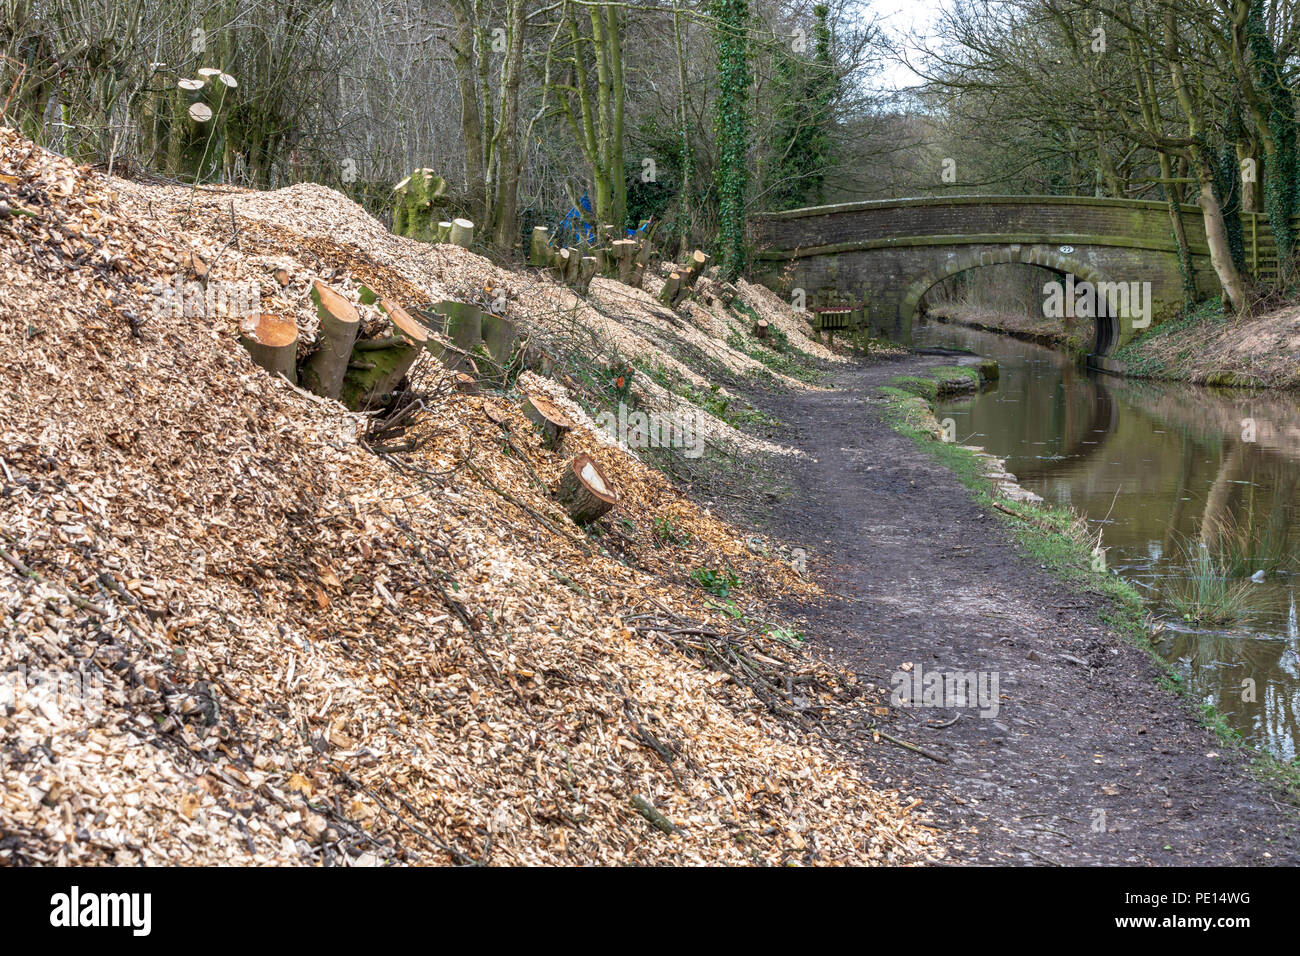 Wood chippings after trees have been cut down on the Macclesfield canal in Cheshire as part of a conservation based canal towpath maintenance - Stock Image